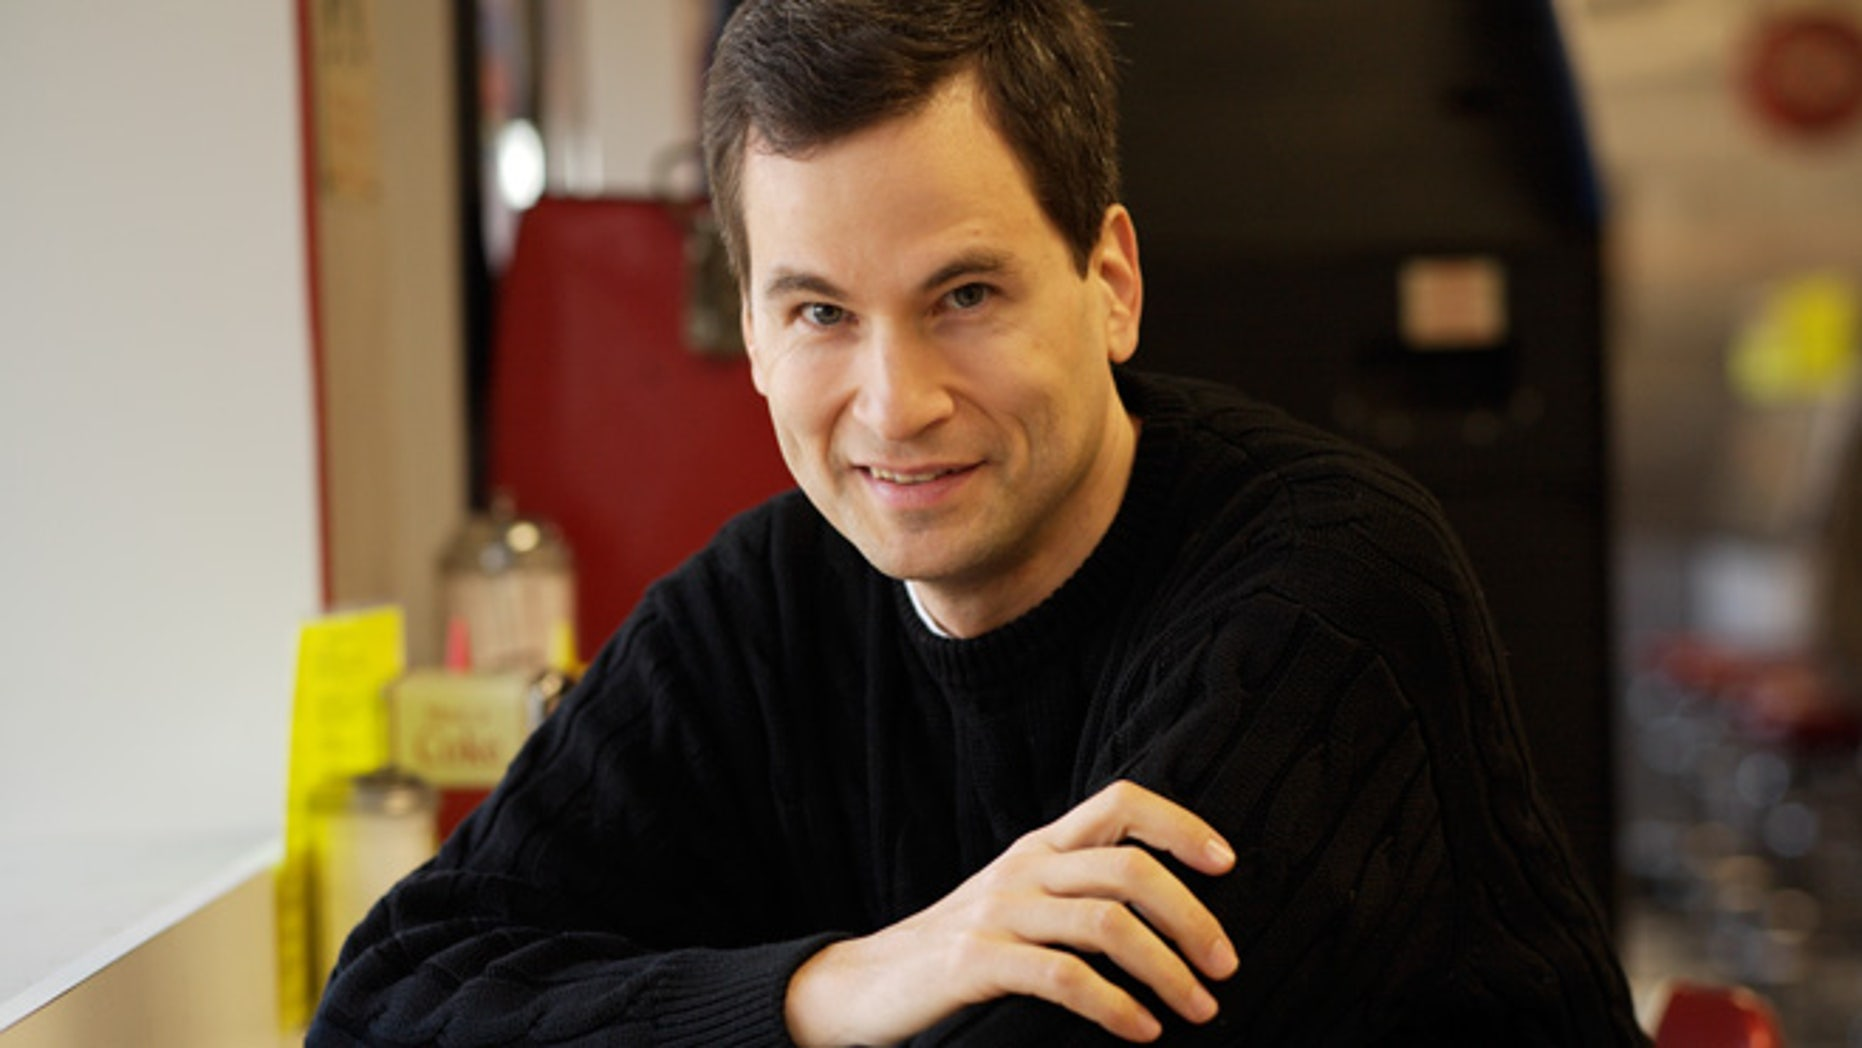 New York Times technology columnist and gadget reviewer David Pogue is leaving the newspaper to cover similar topics for Yahoo.